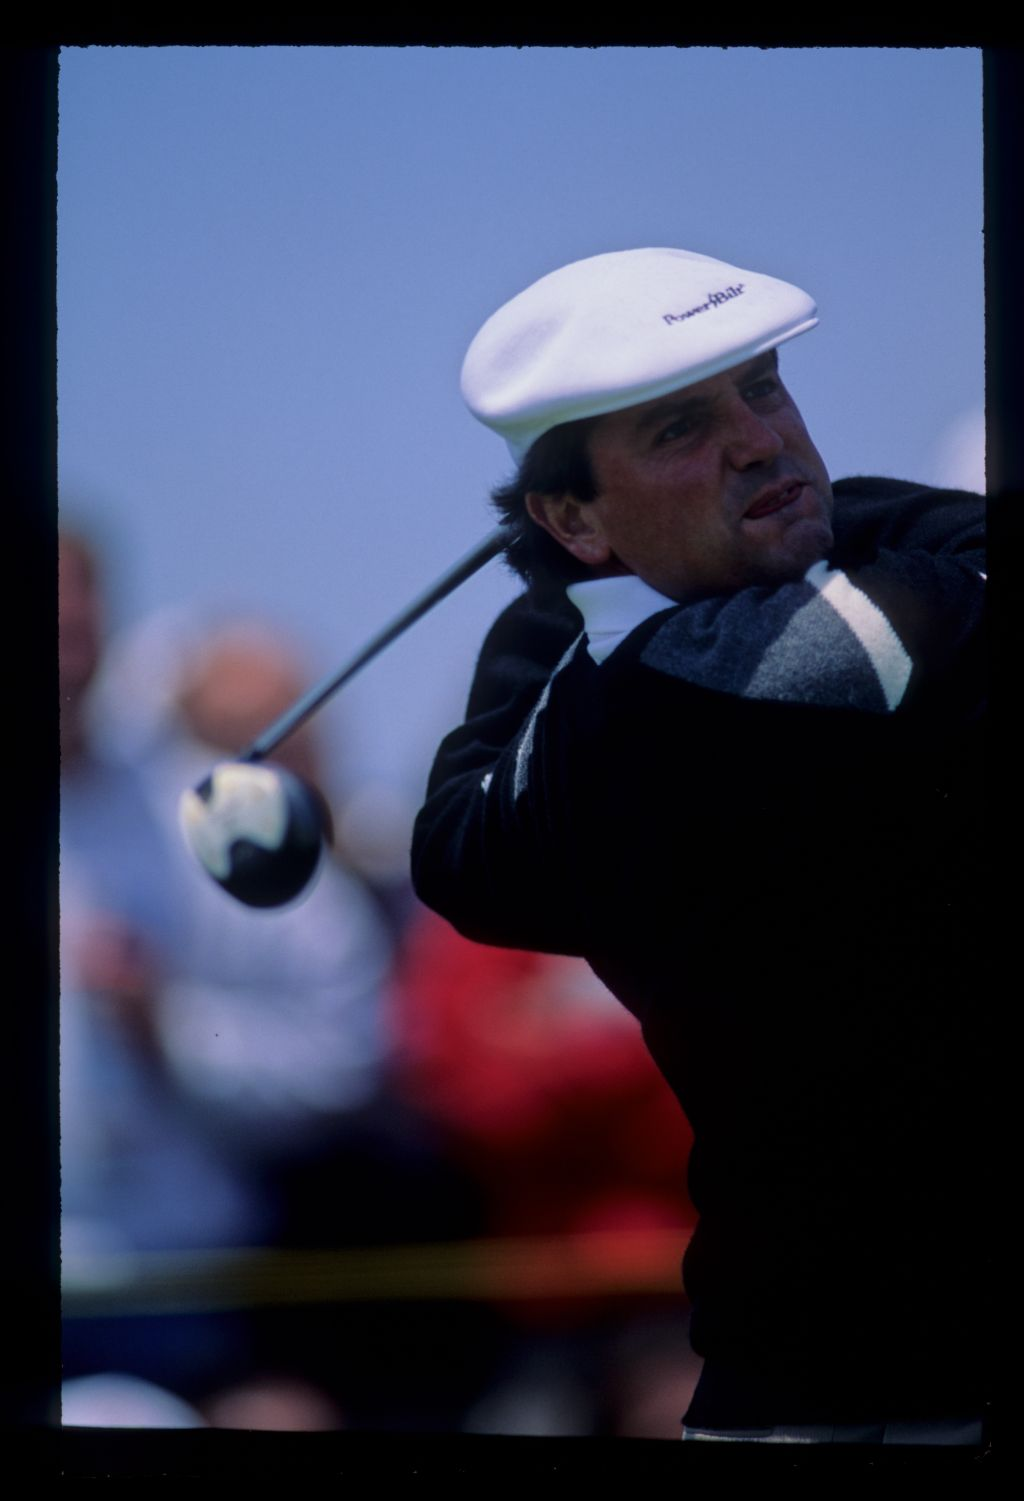 Mark McNulty watching a shot closely during the 1992 US Open